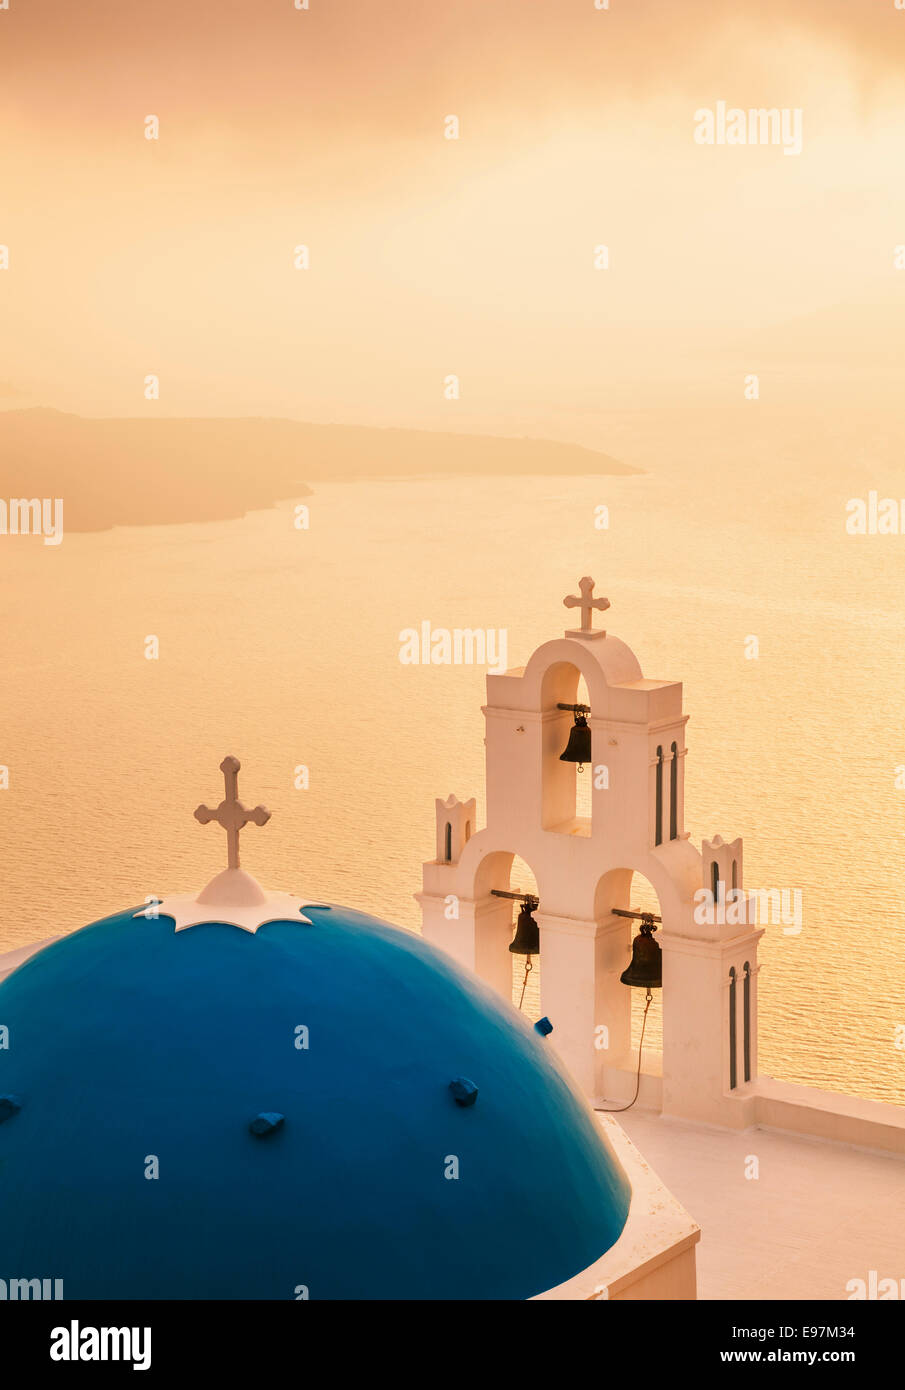 St Gerasimos church at sunset , Firostefani, Fira, Santorini, Thira, Cyclades islands, Aegean Sea, Greece, EU, Europe Stock Photo